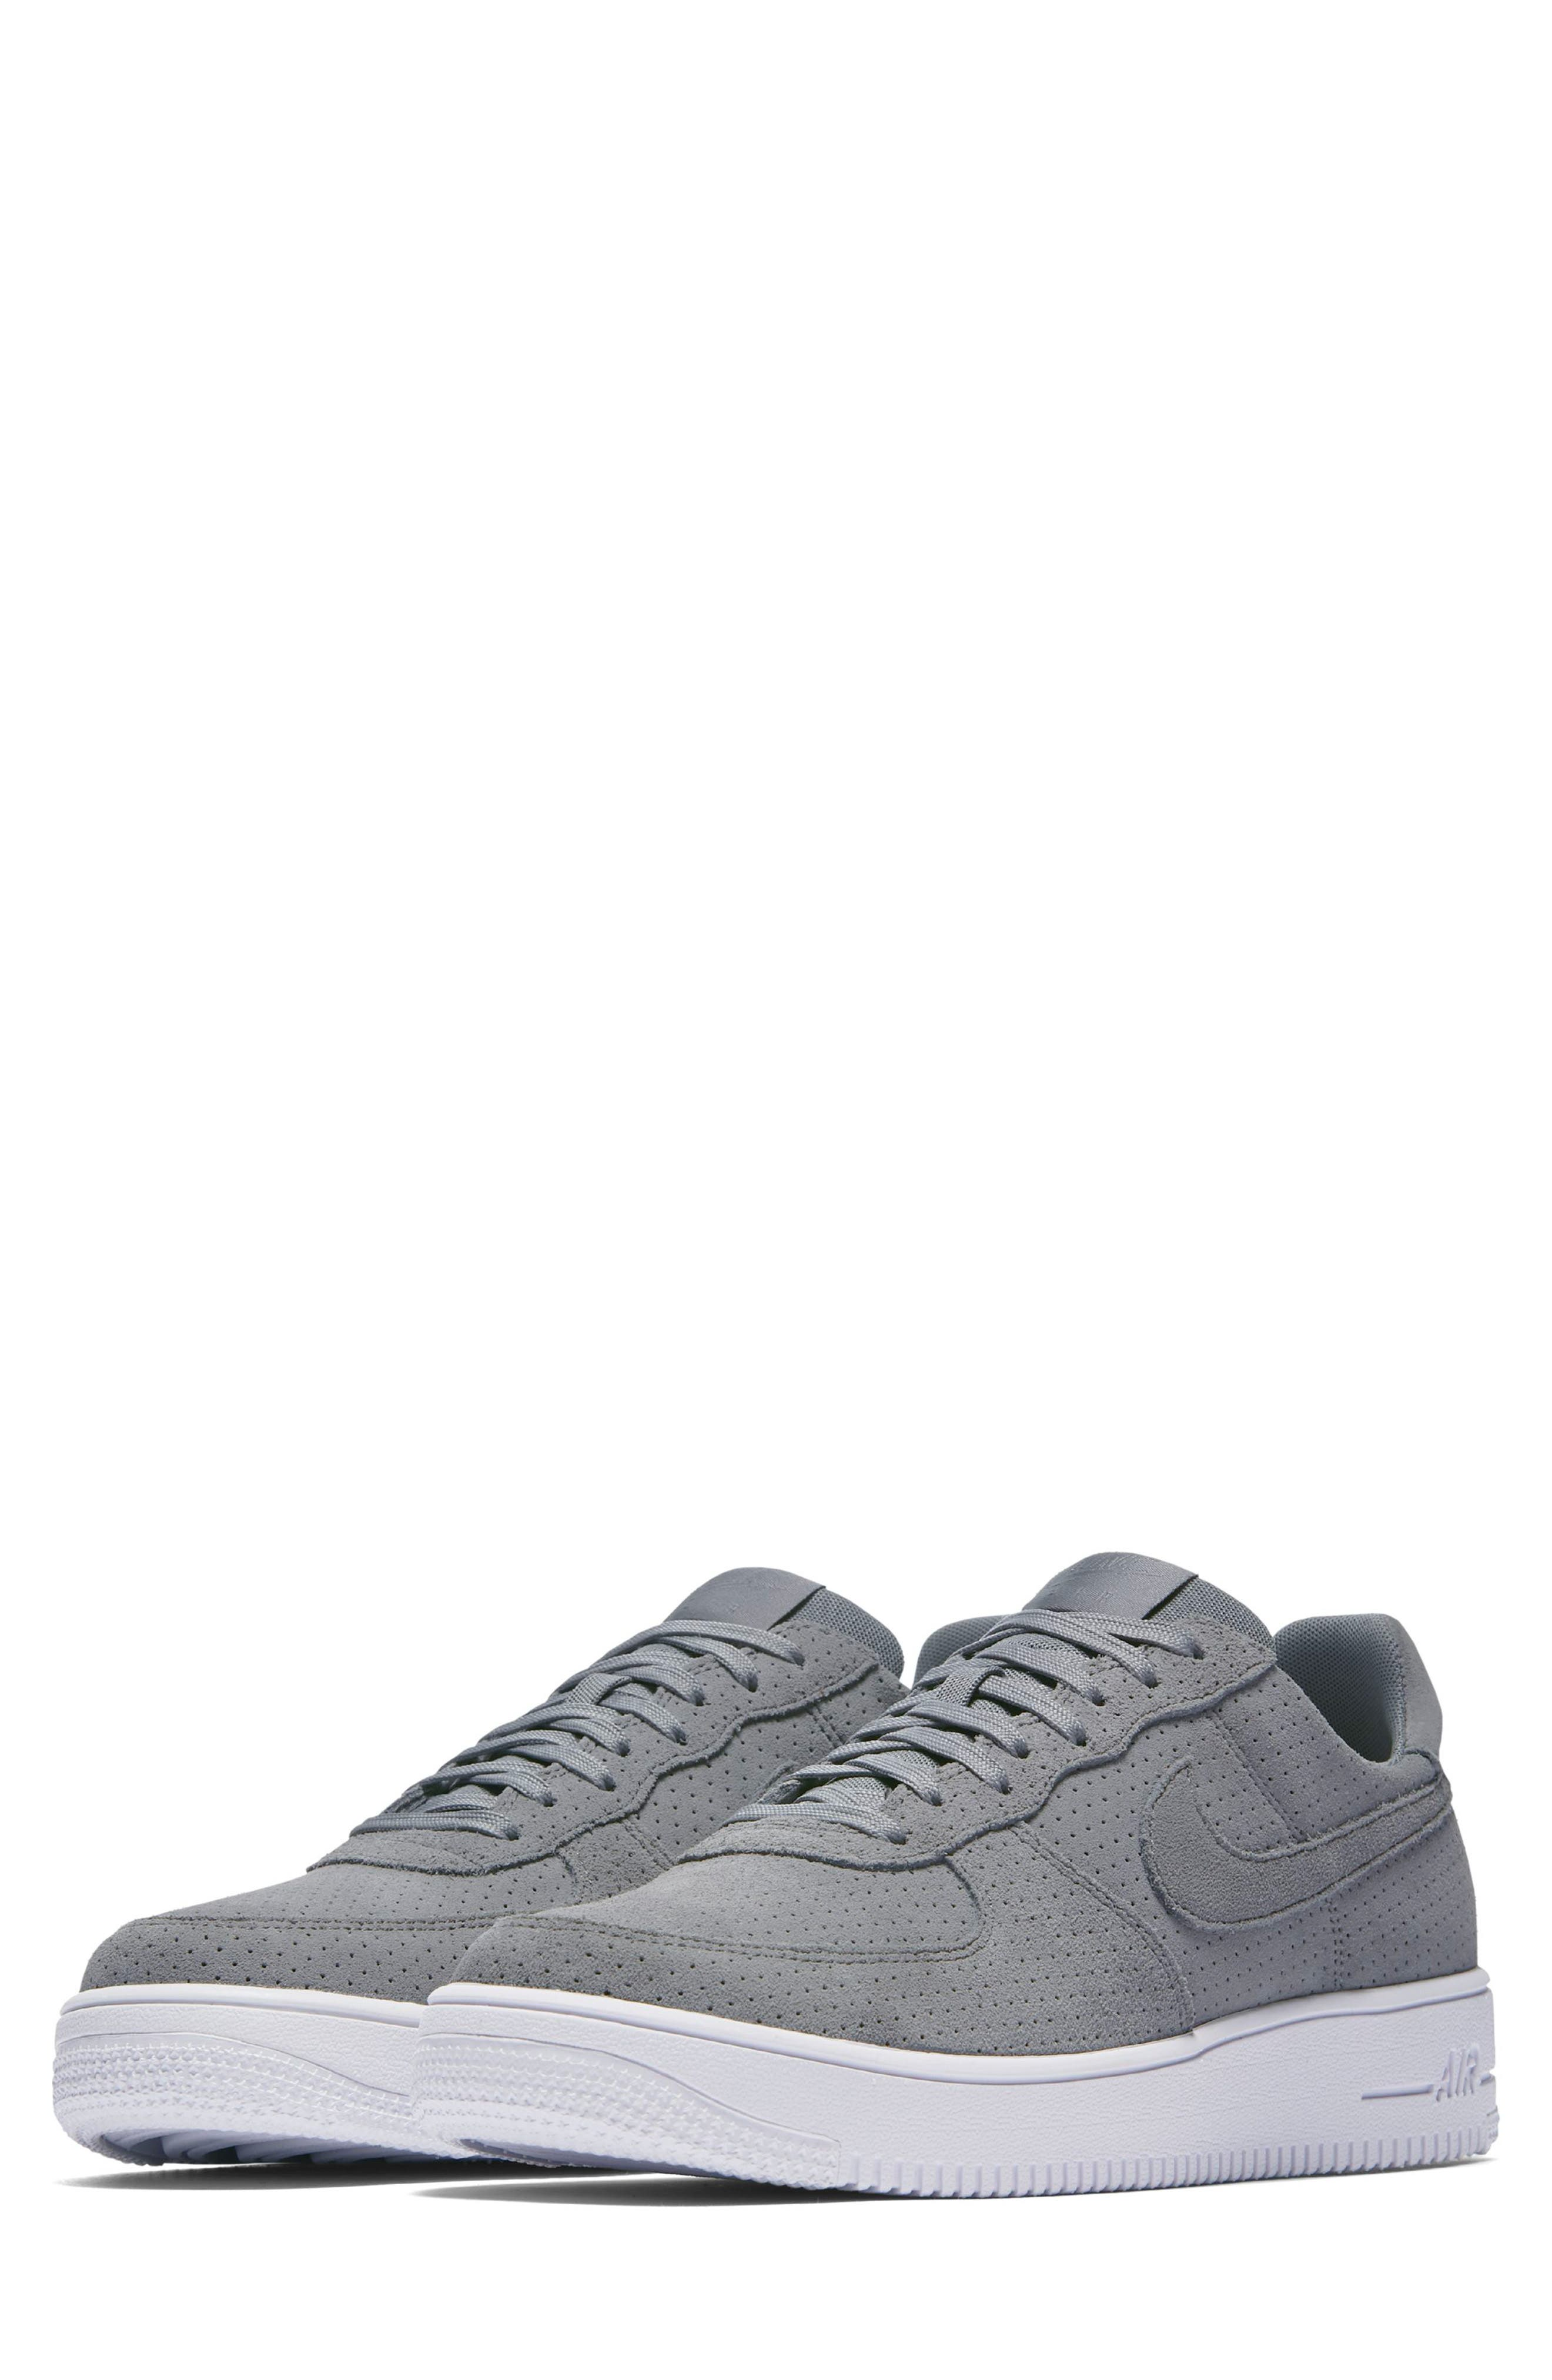 Air Force 1 Ultraforce Sneaker,                         Main,                         color, Cool Grey/ White